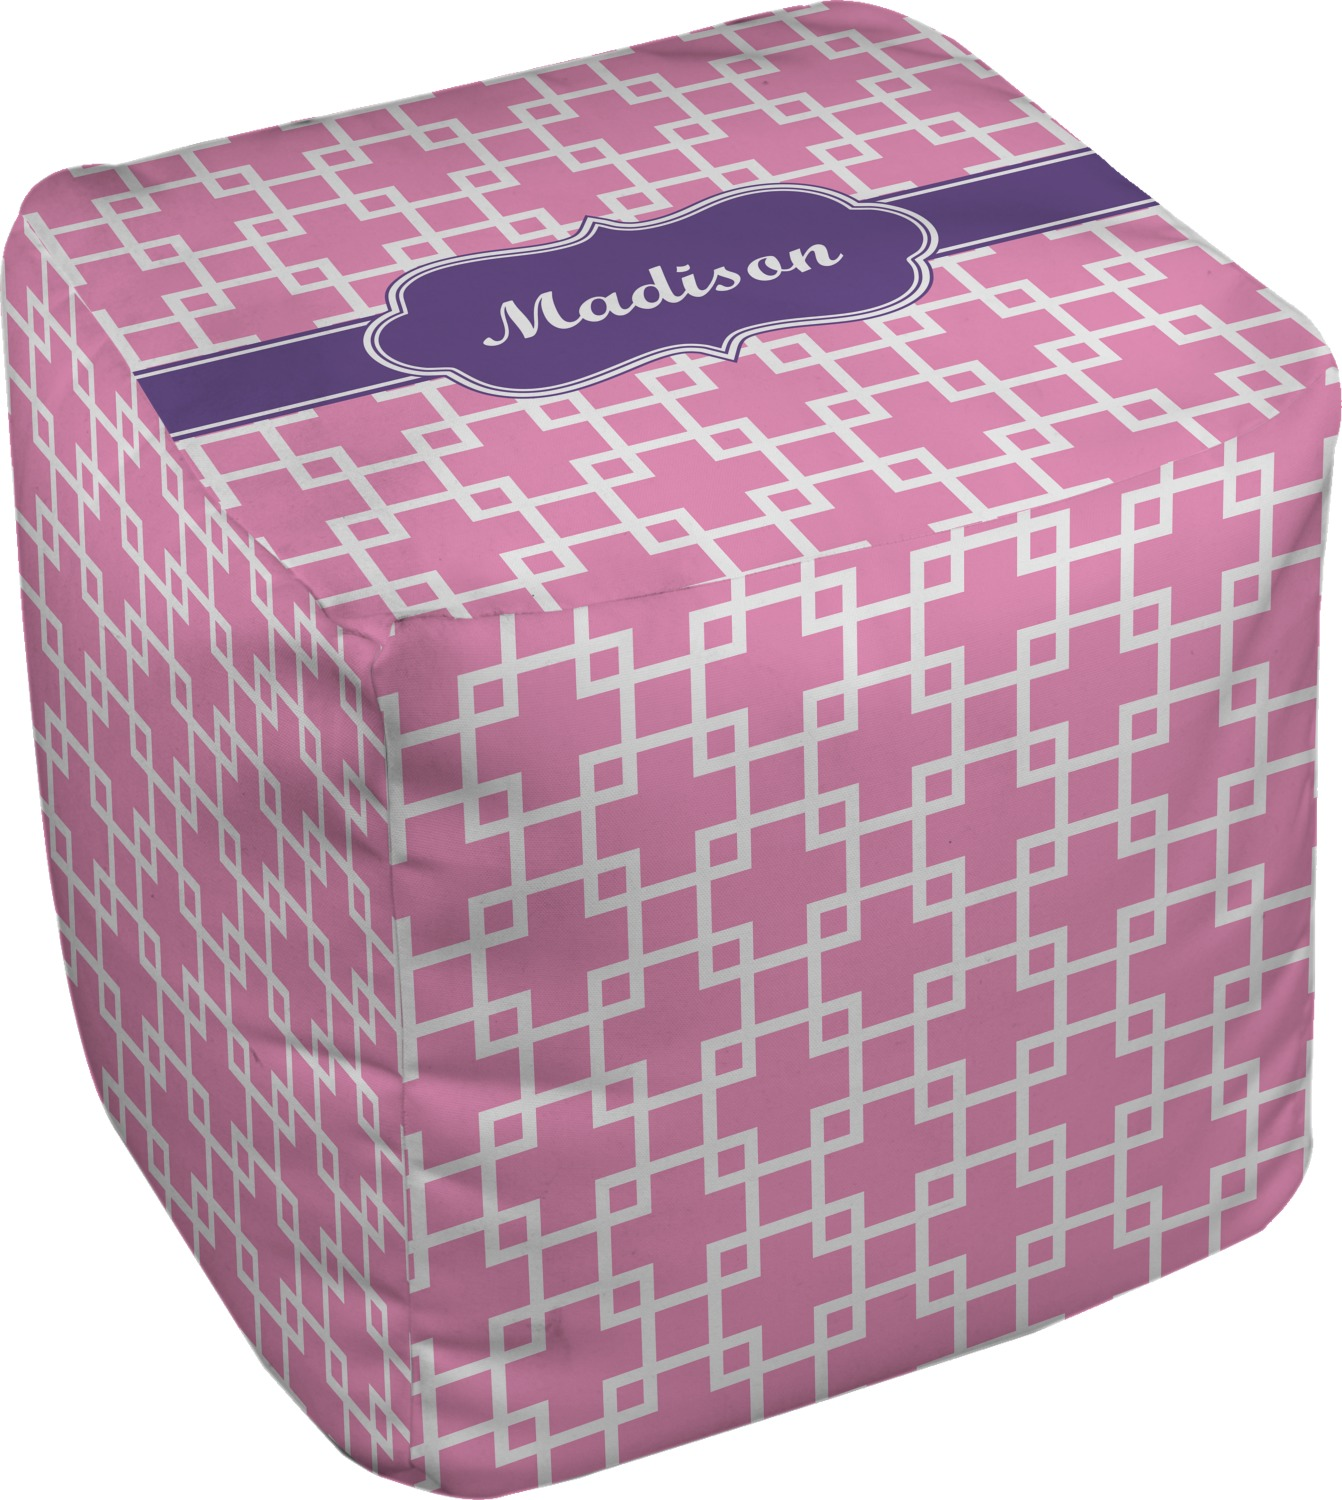 Linked Squares Cube Pouf Ottoman 13 Personalized